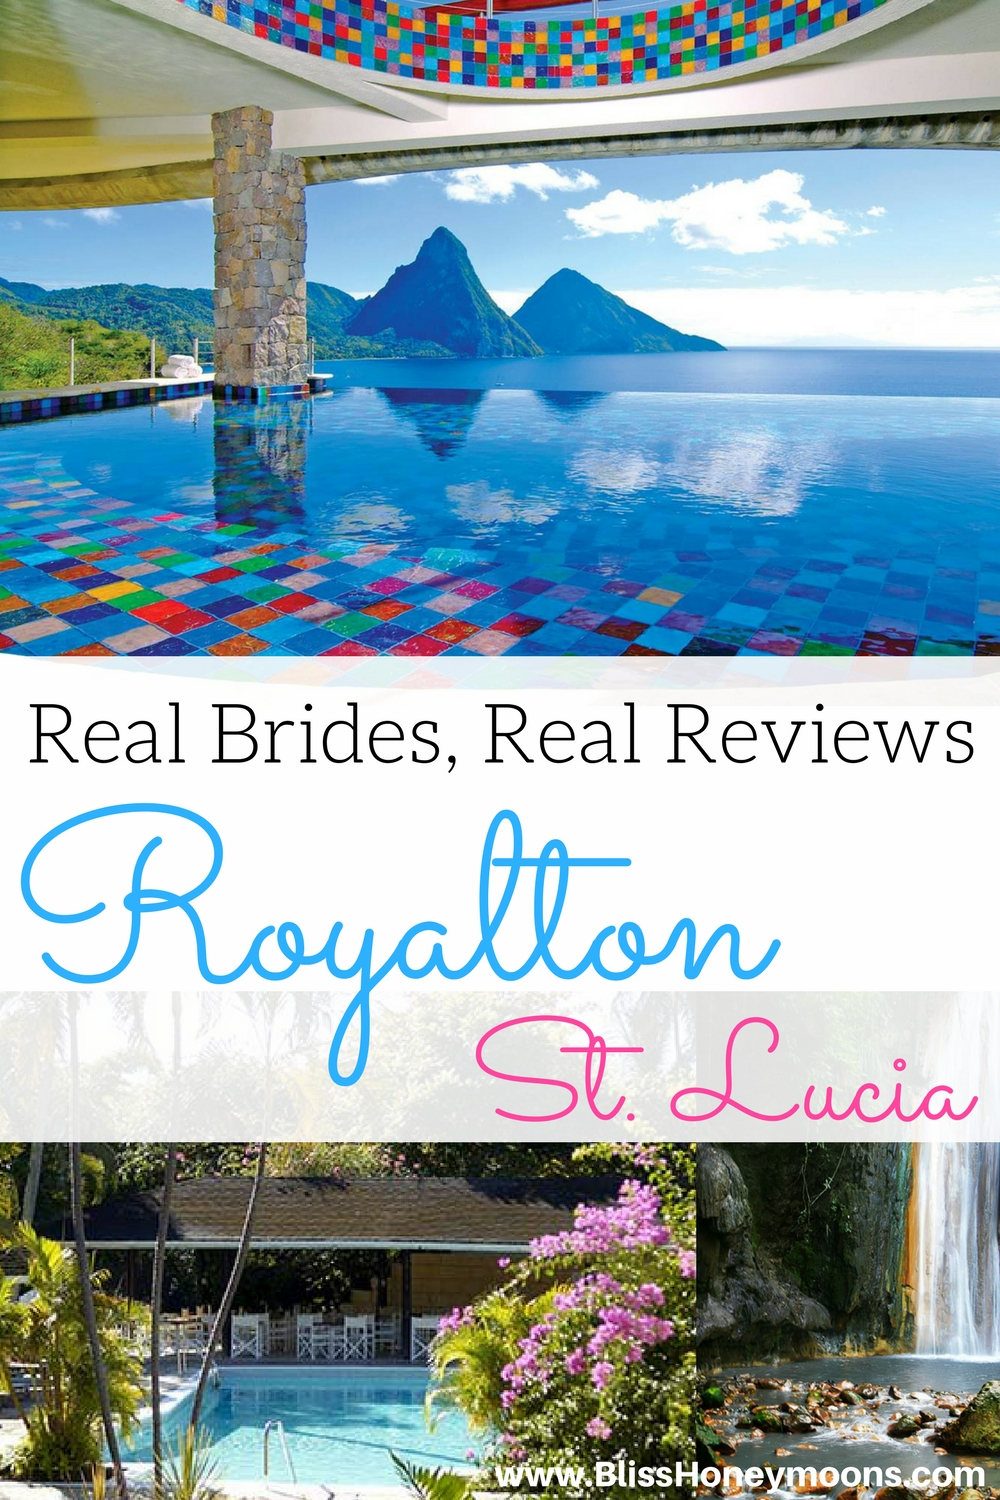 Royalton St Lucia review, real brides real reviews, Royalton St Lucia honeymoon, review Royalton St Lucia